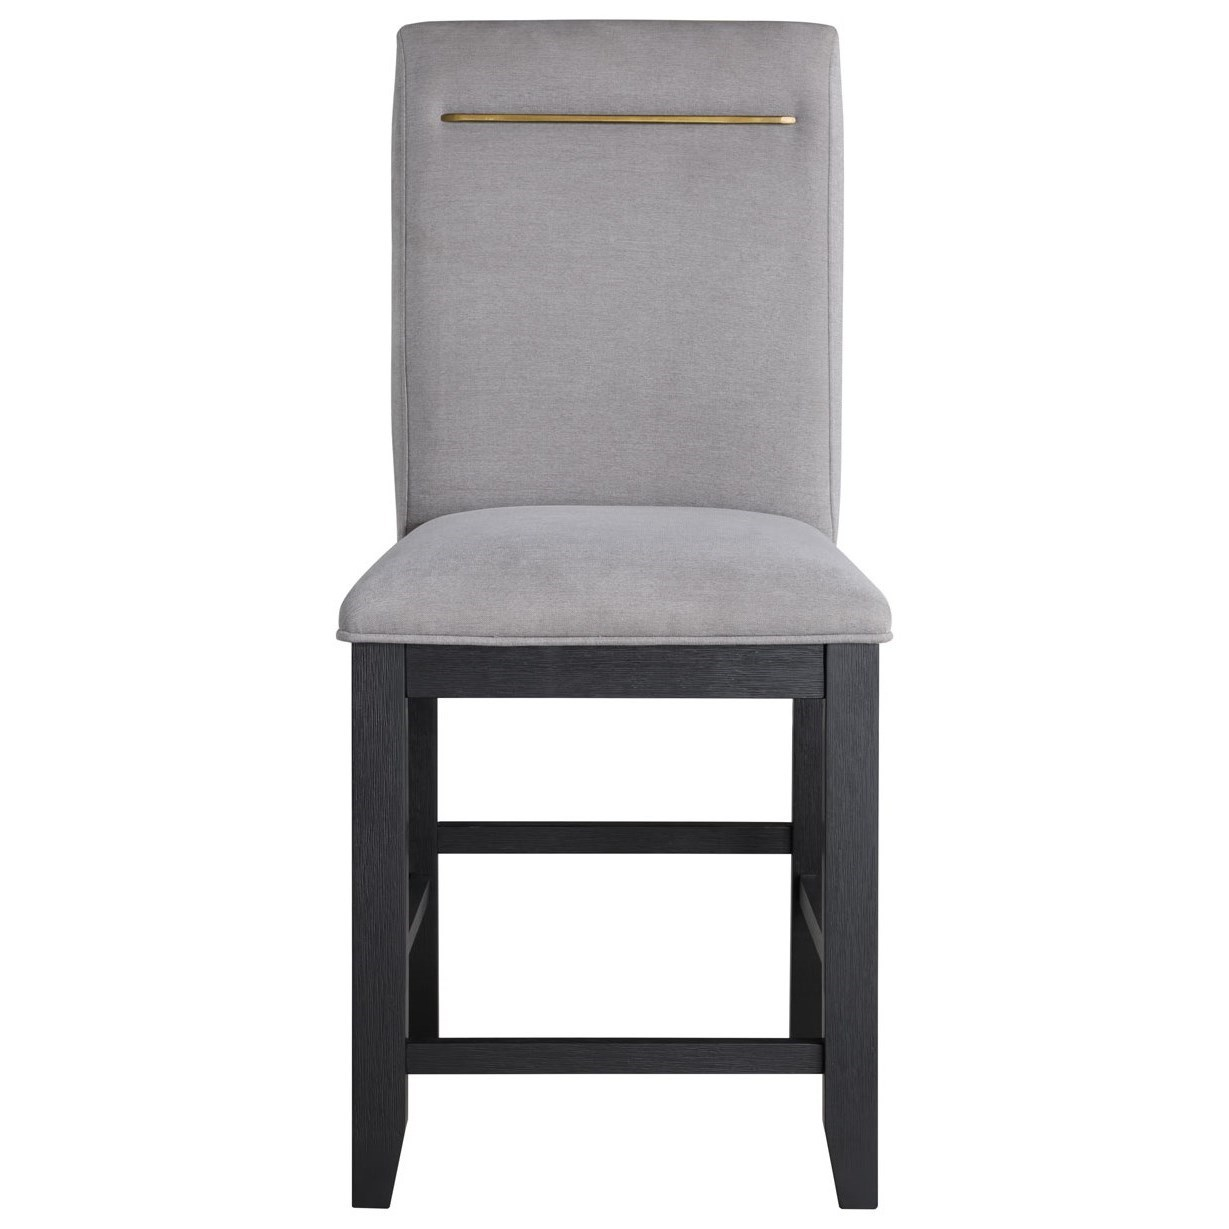 Yves Upholstered Bar Stool  by Steve Silver at Northeast Factory Direct